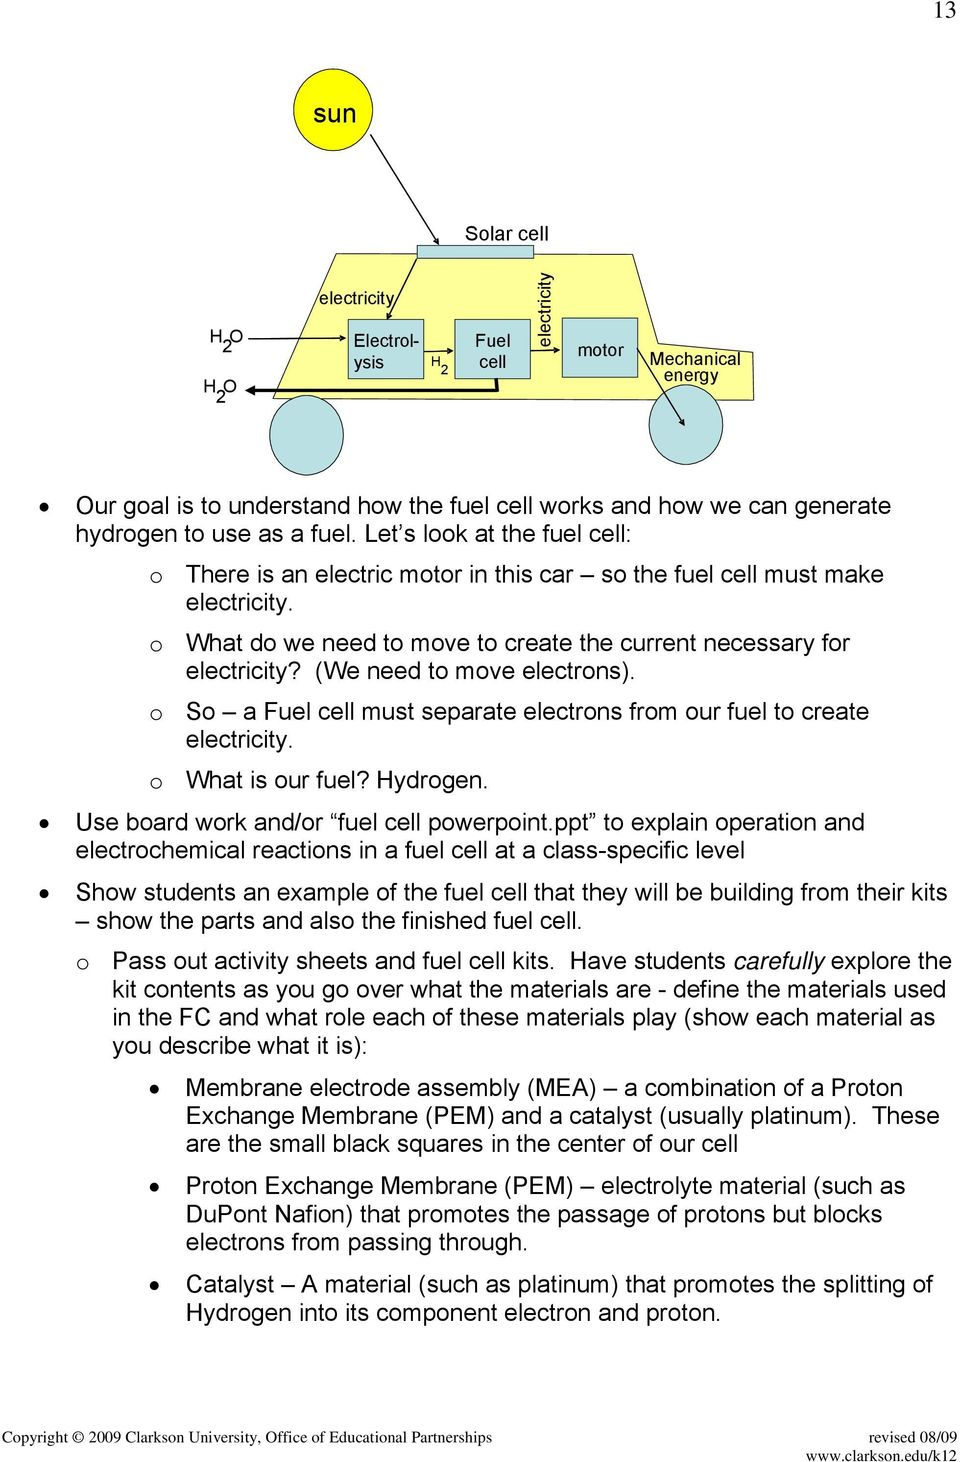 Lesson 3 Battery and Fuel Cell Technologies - PDF